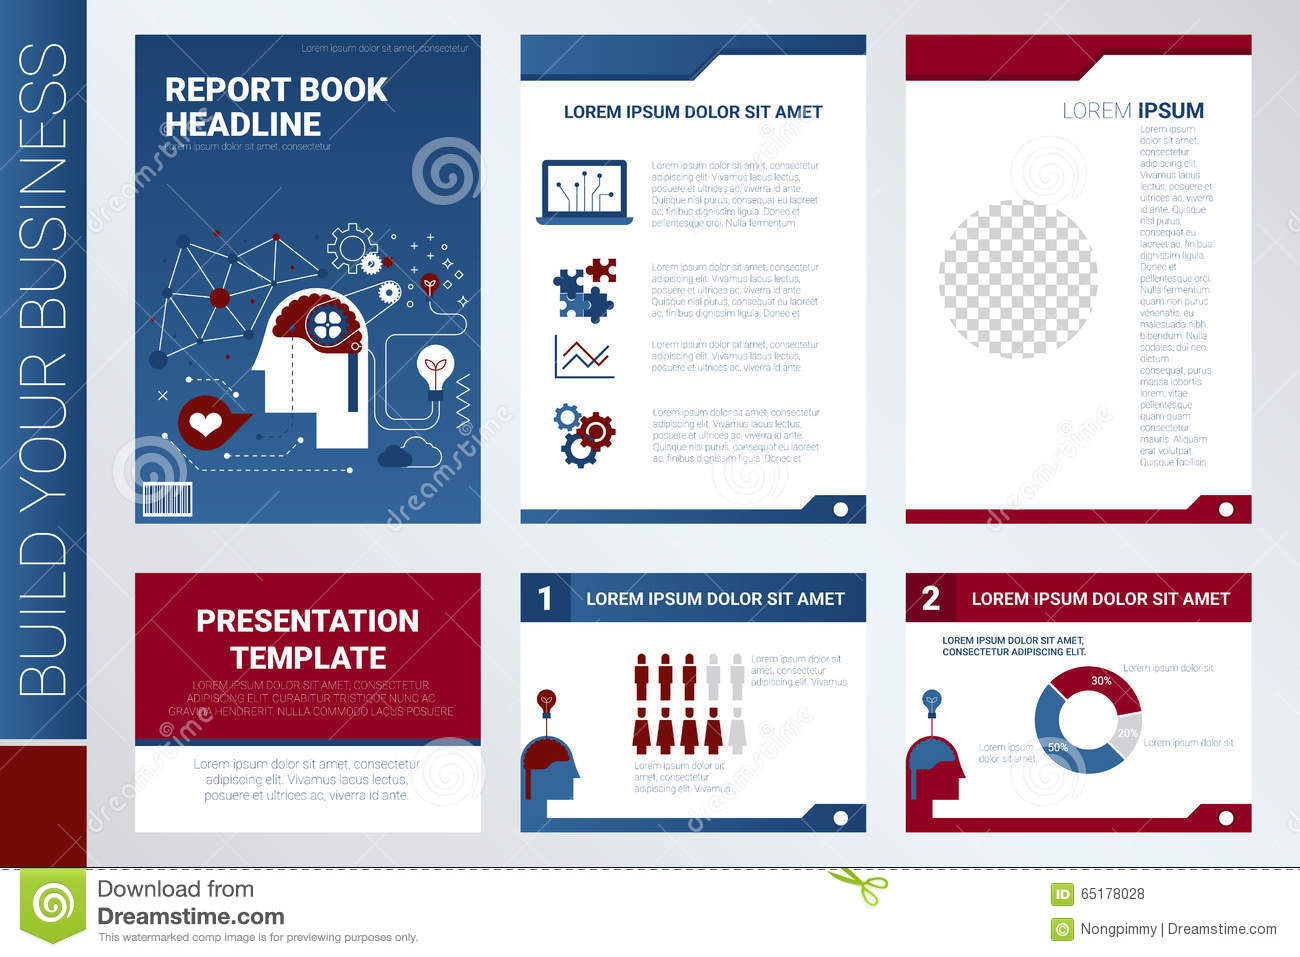 key elements of a book report